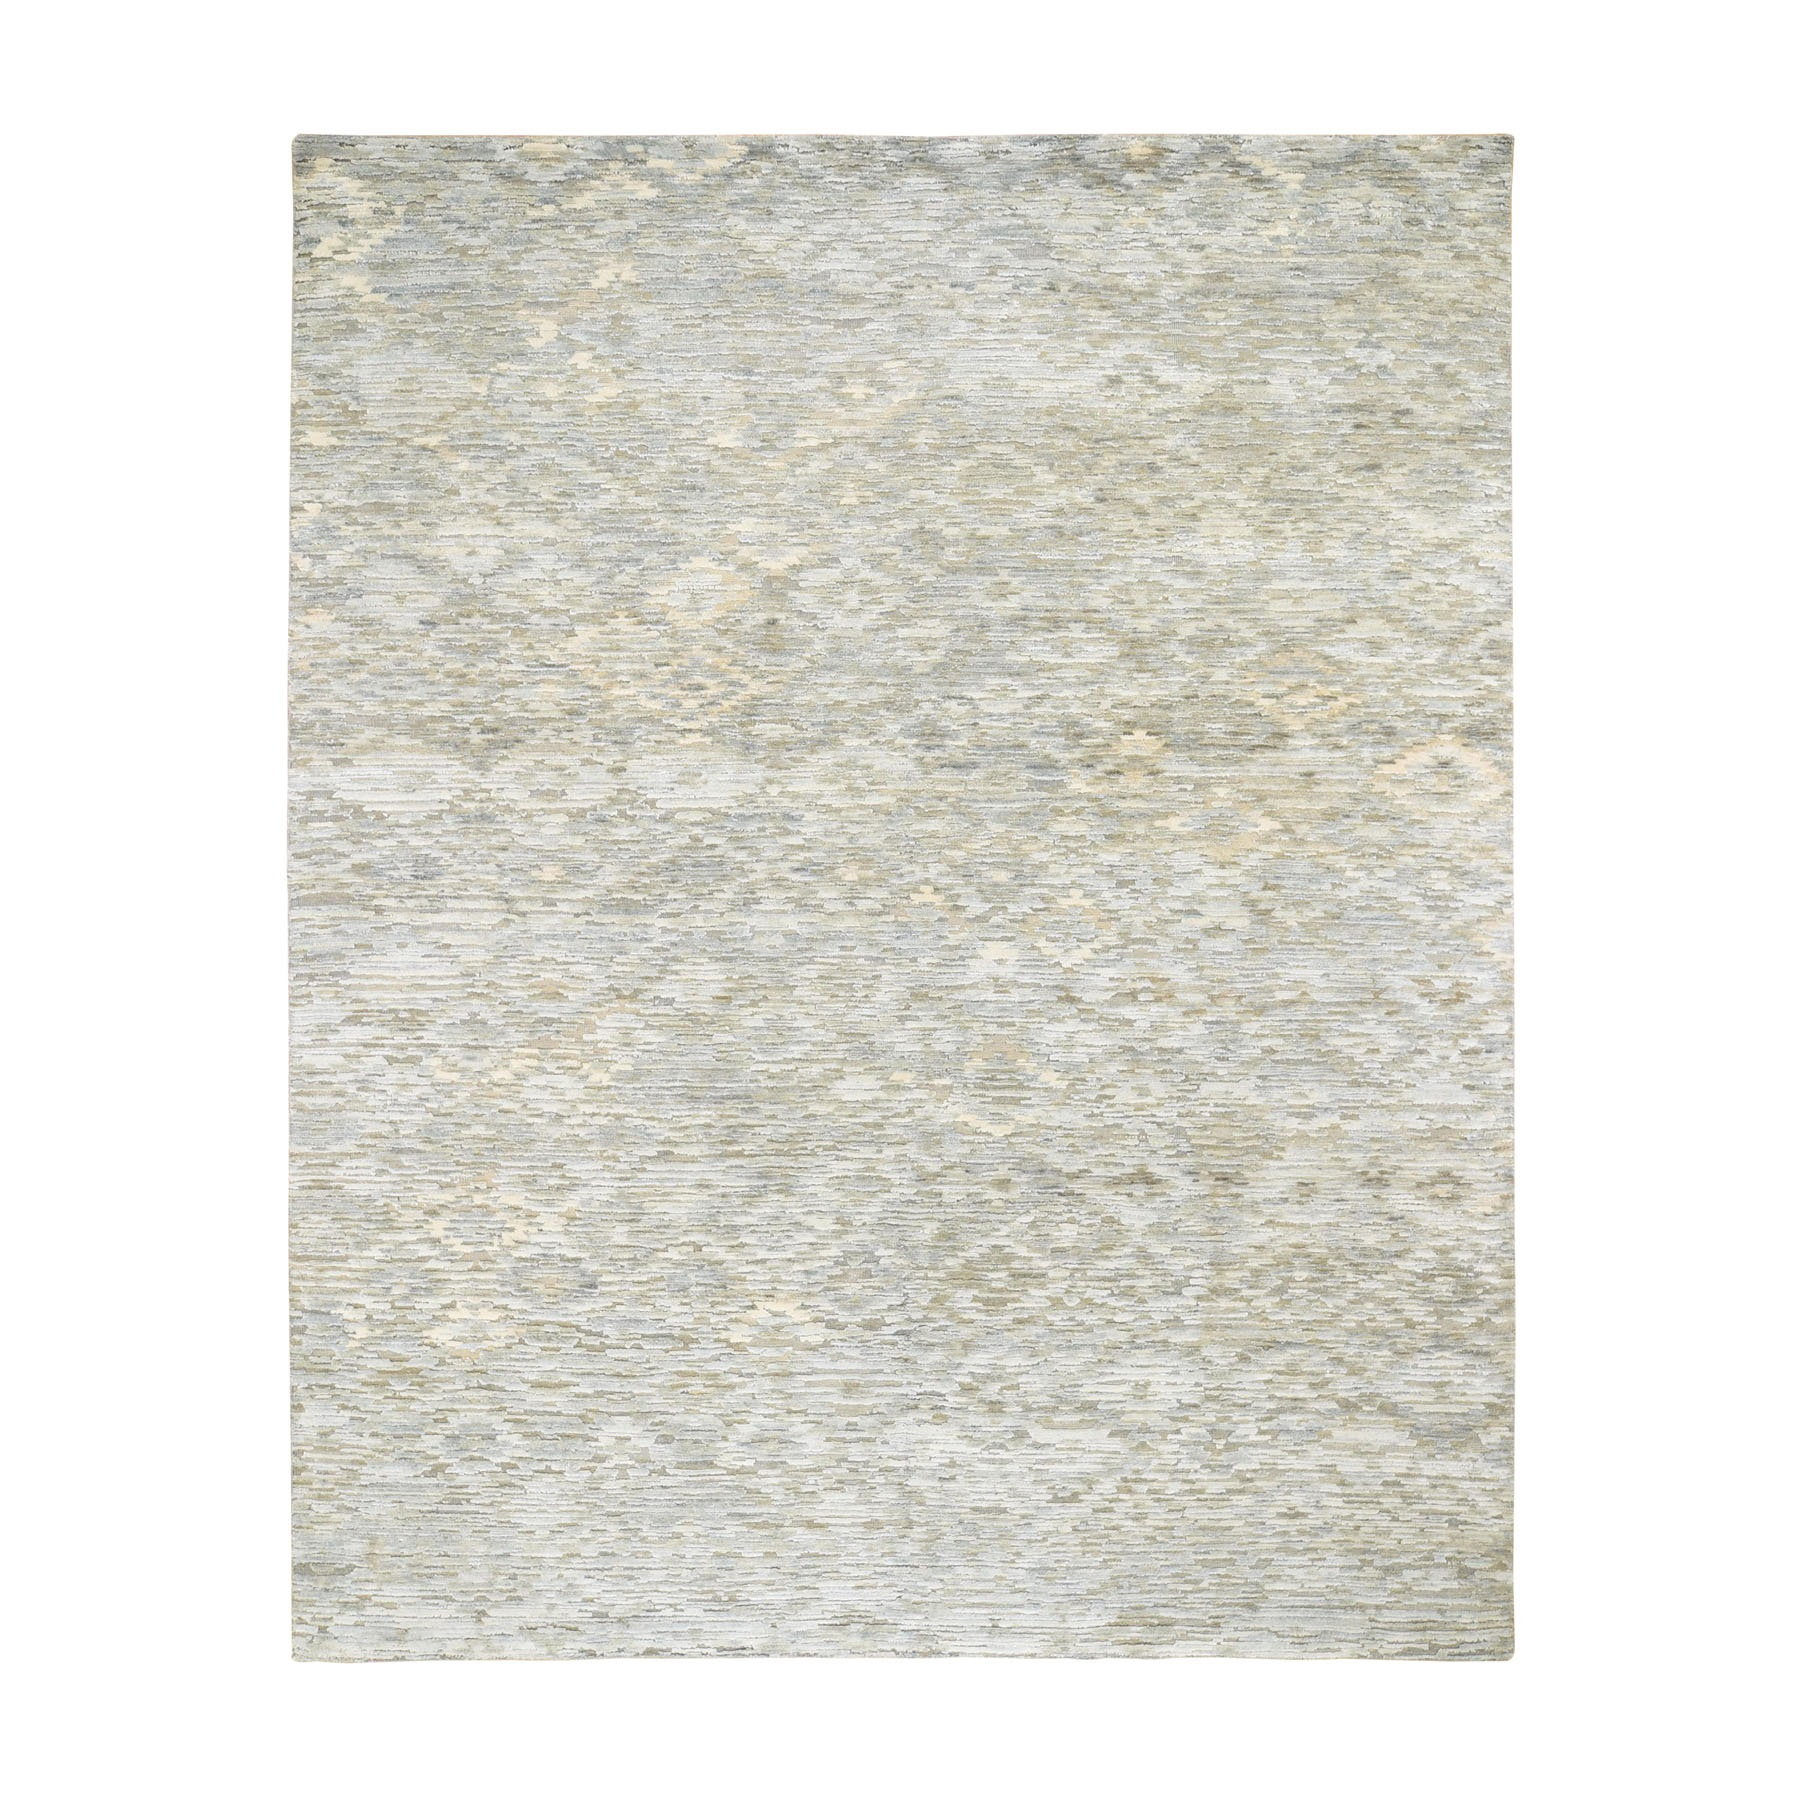 modern & contemporary rugs LUV437112